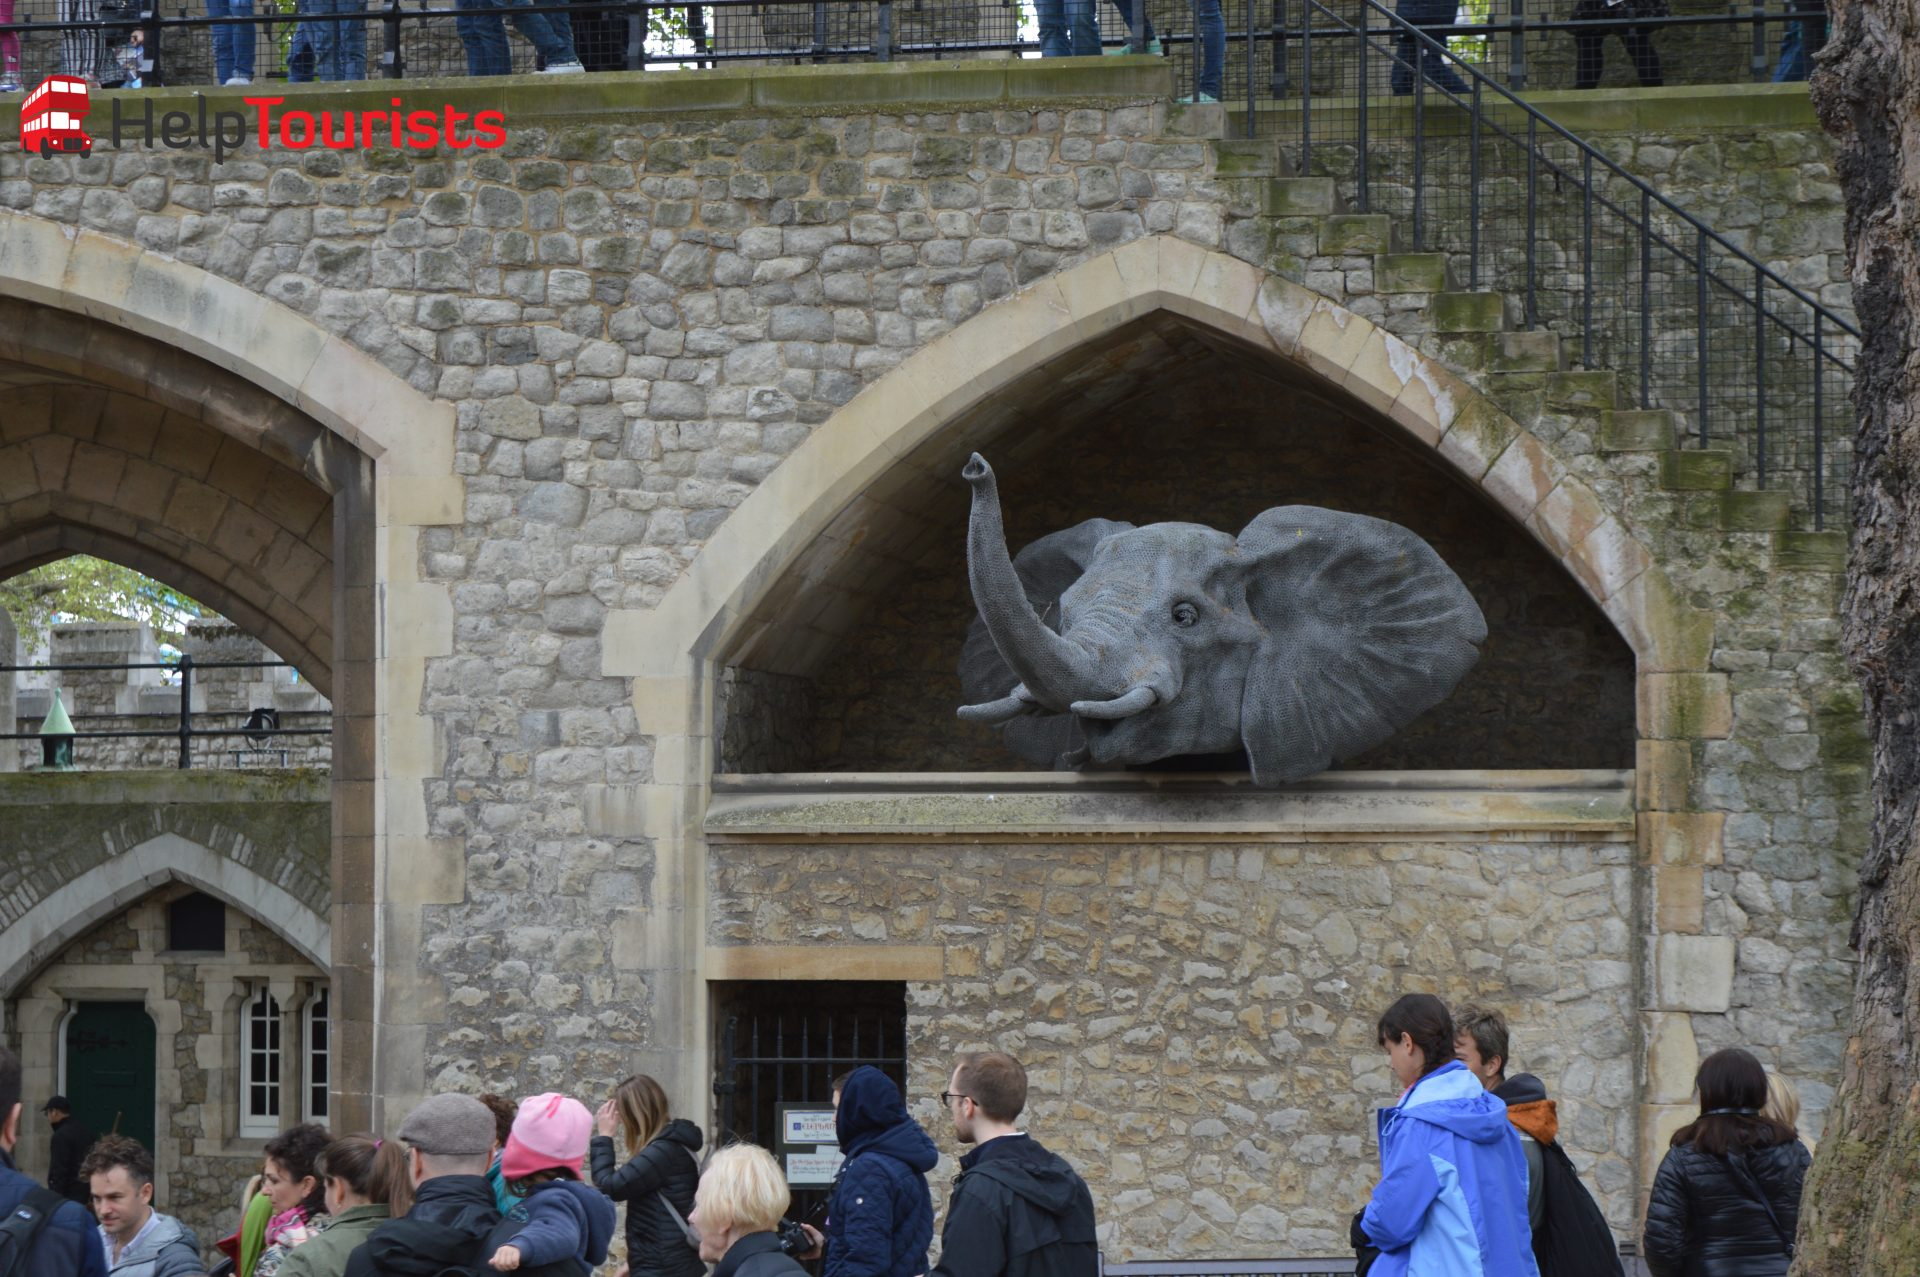 Tower of London Zoo